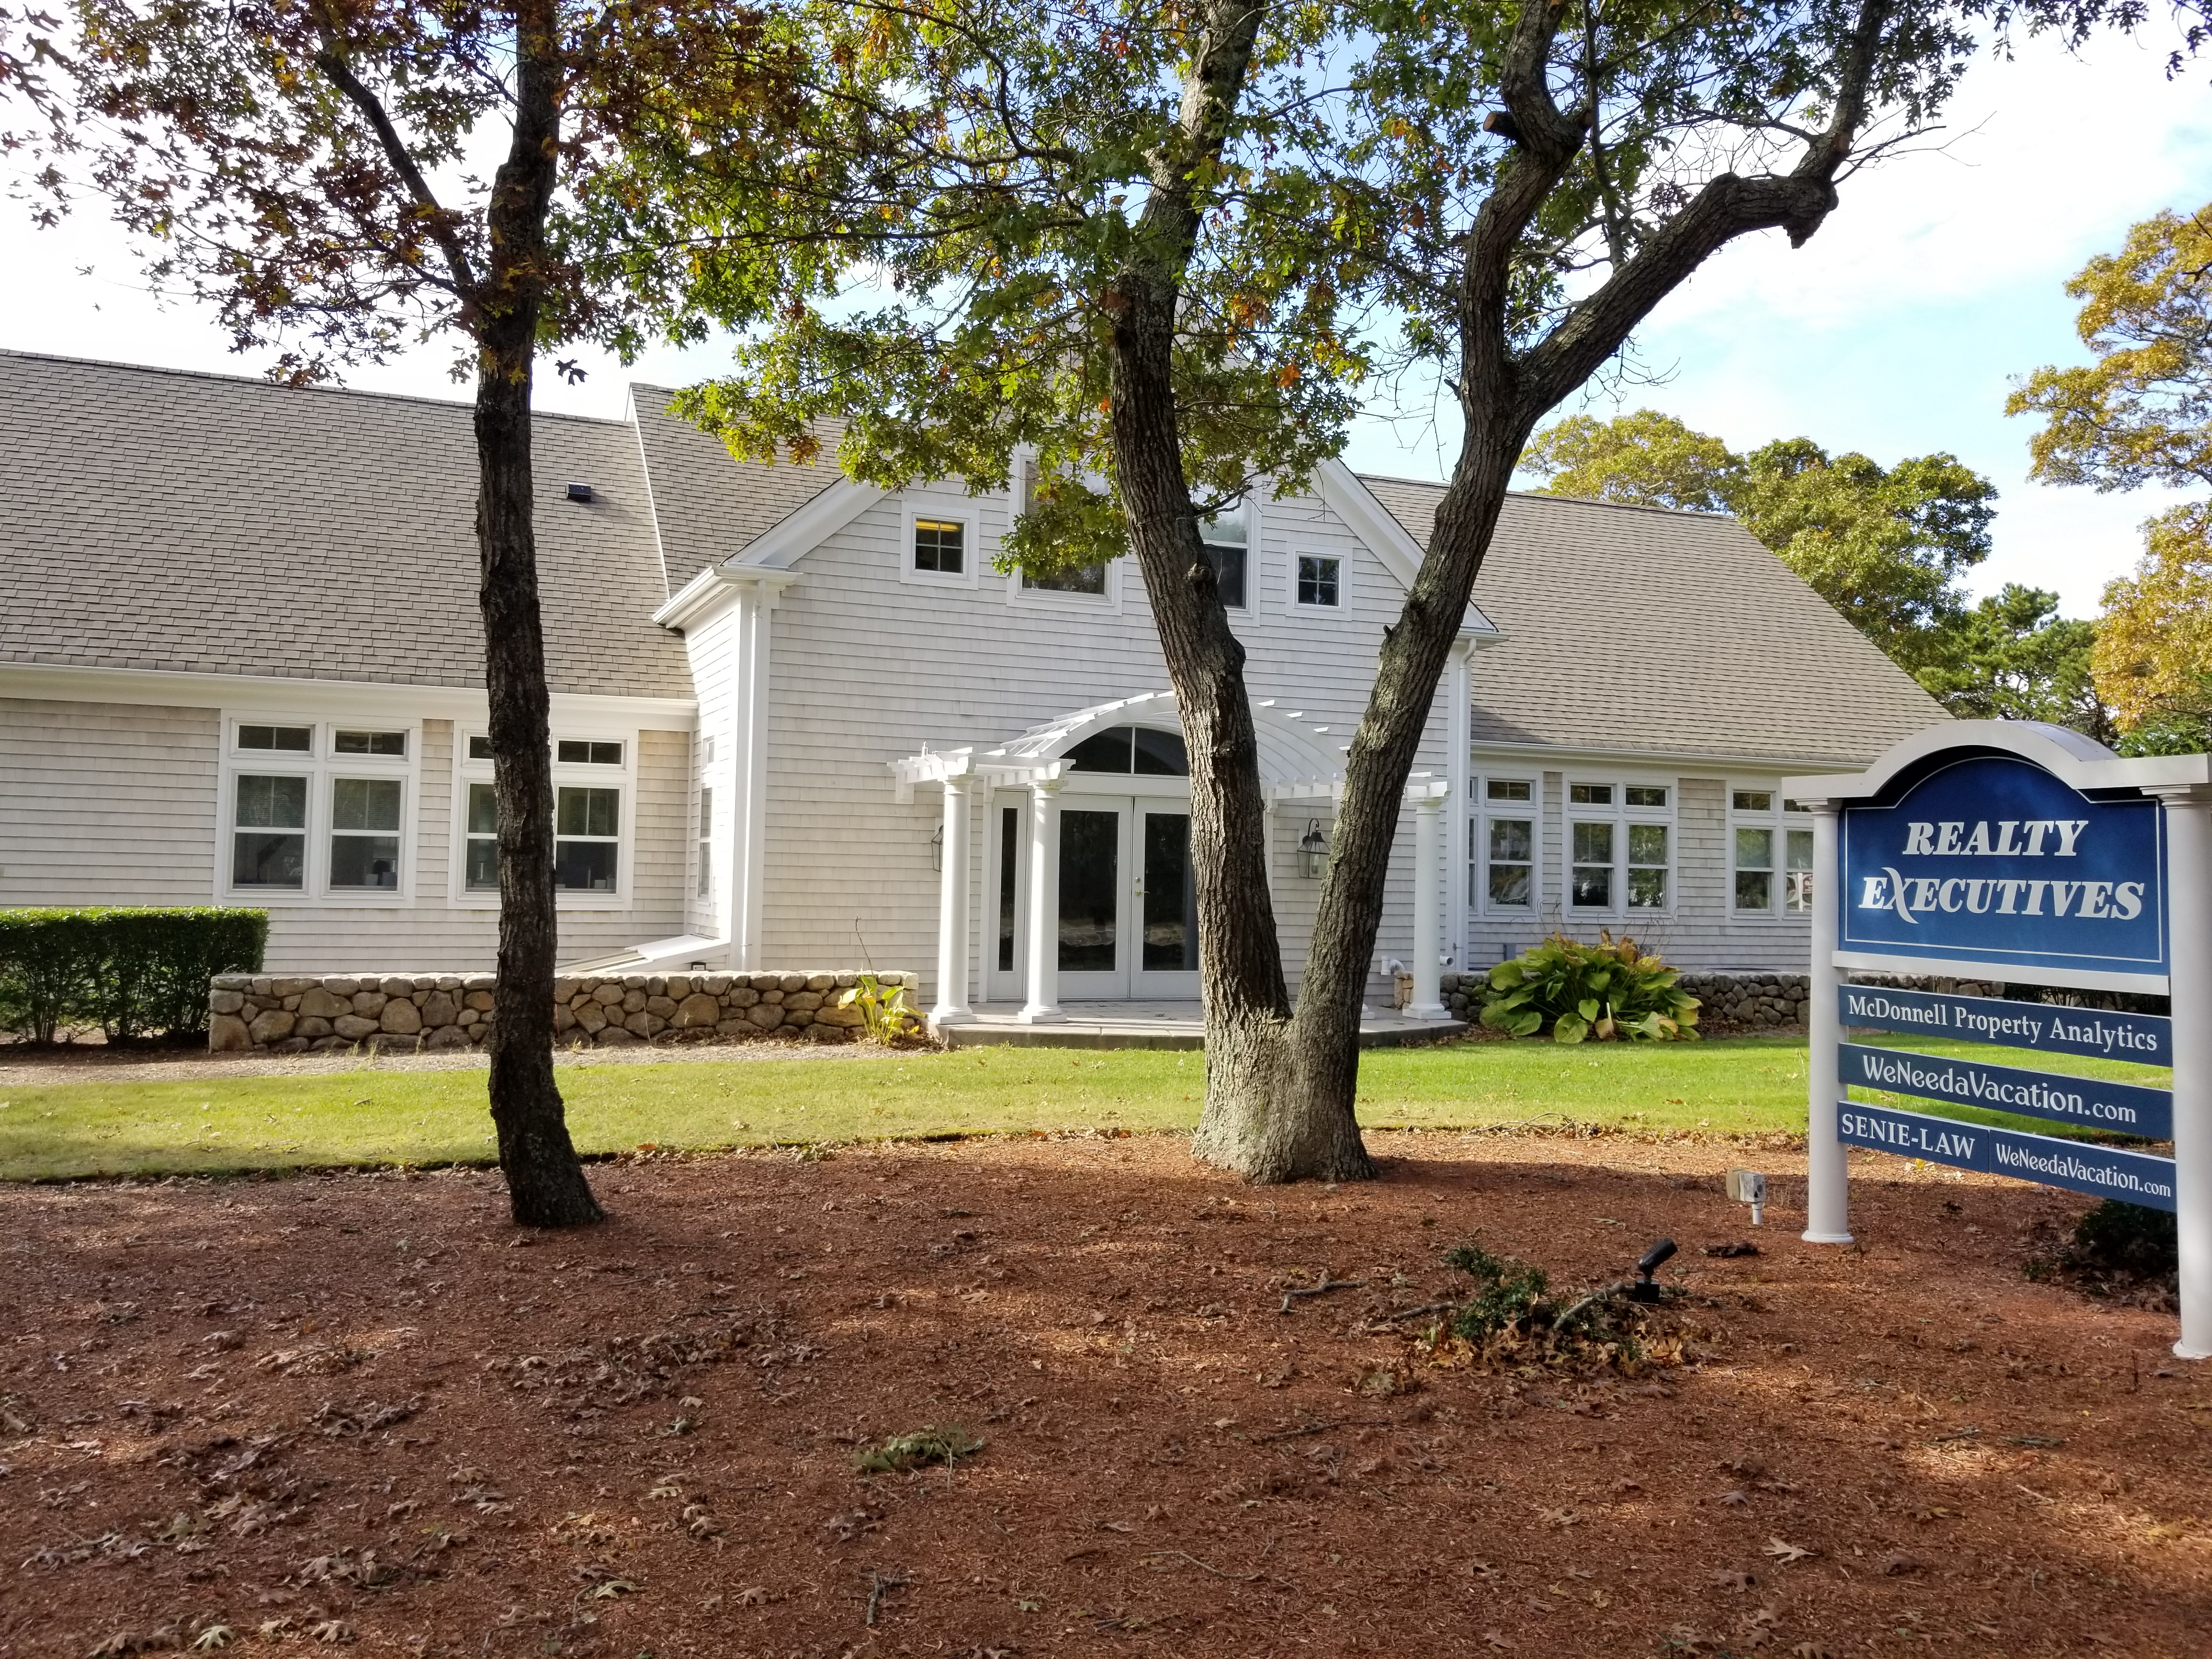 Realty Executives Lower Cape